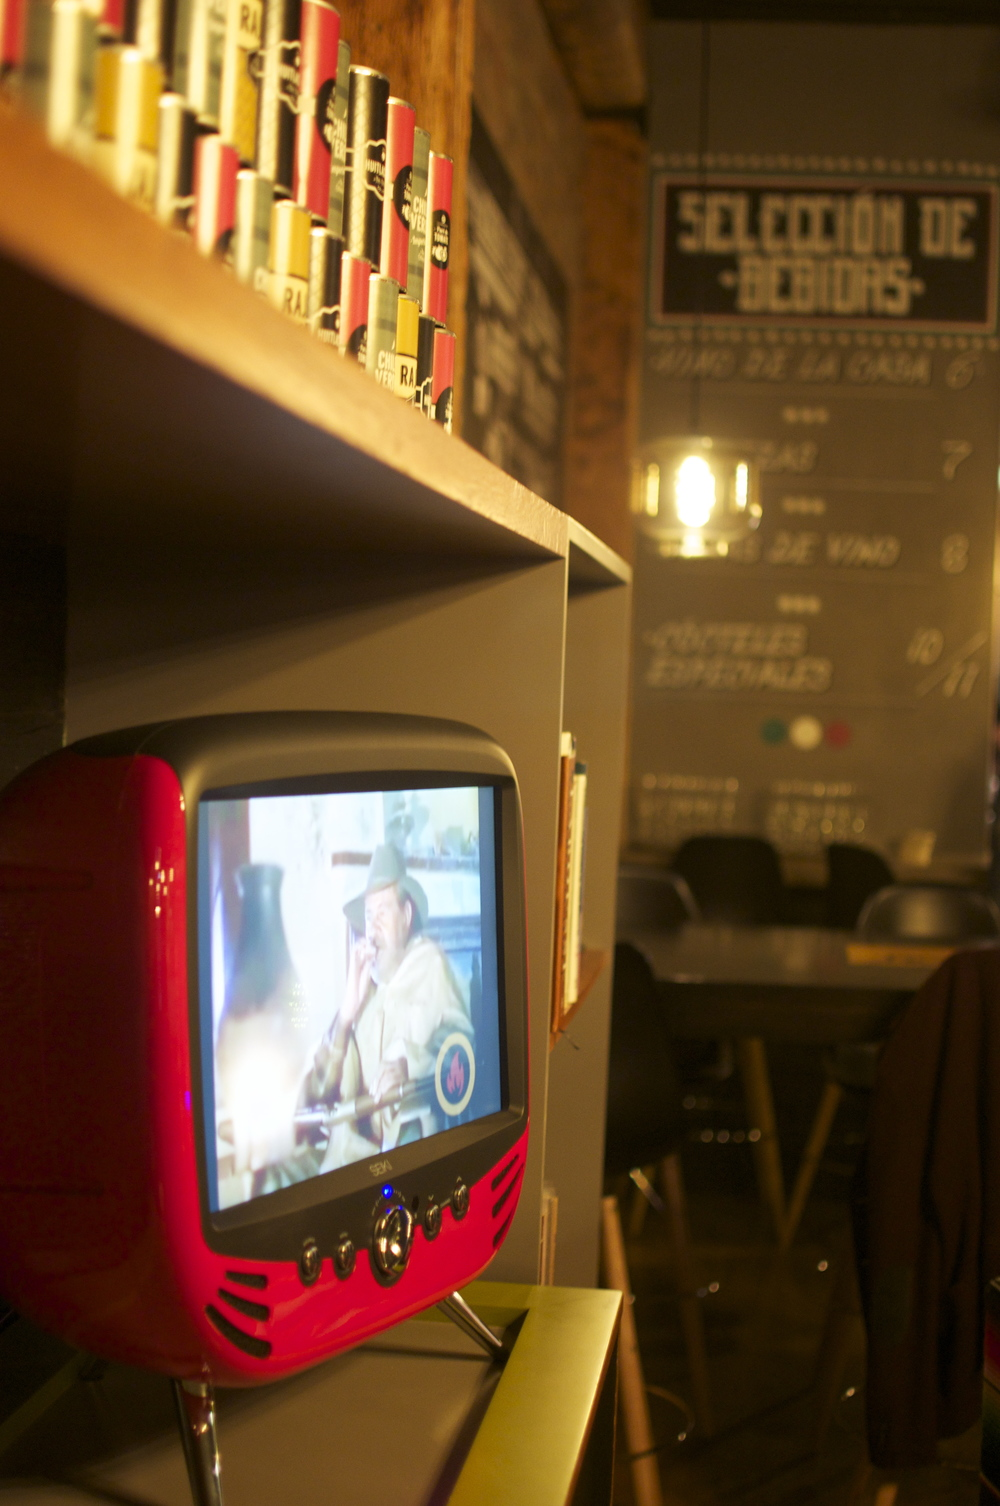 Check out the retro TVs and watch some old-school Mexican shows or browse through the Spanish cookbooks on the shelves in La Sala